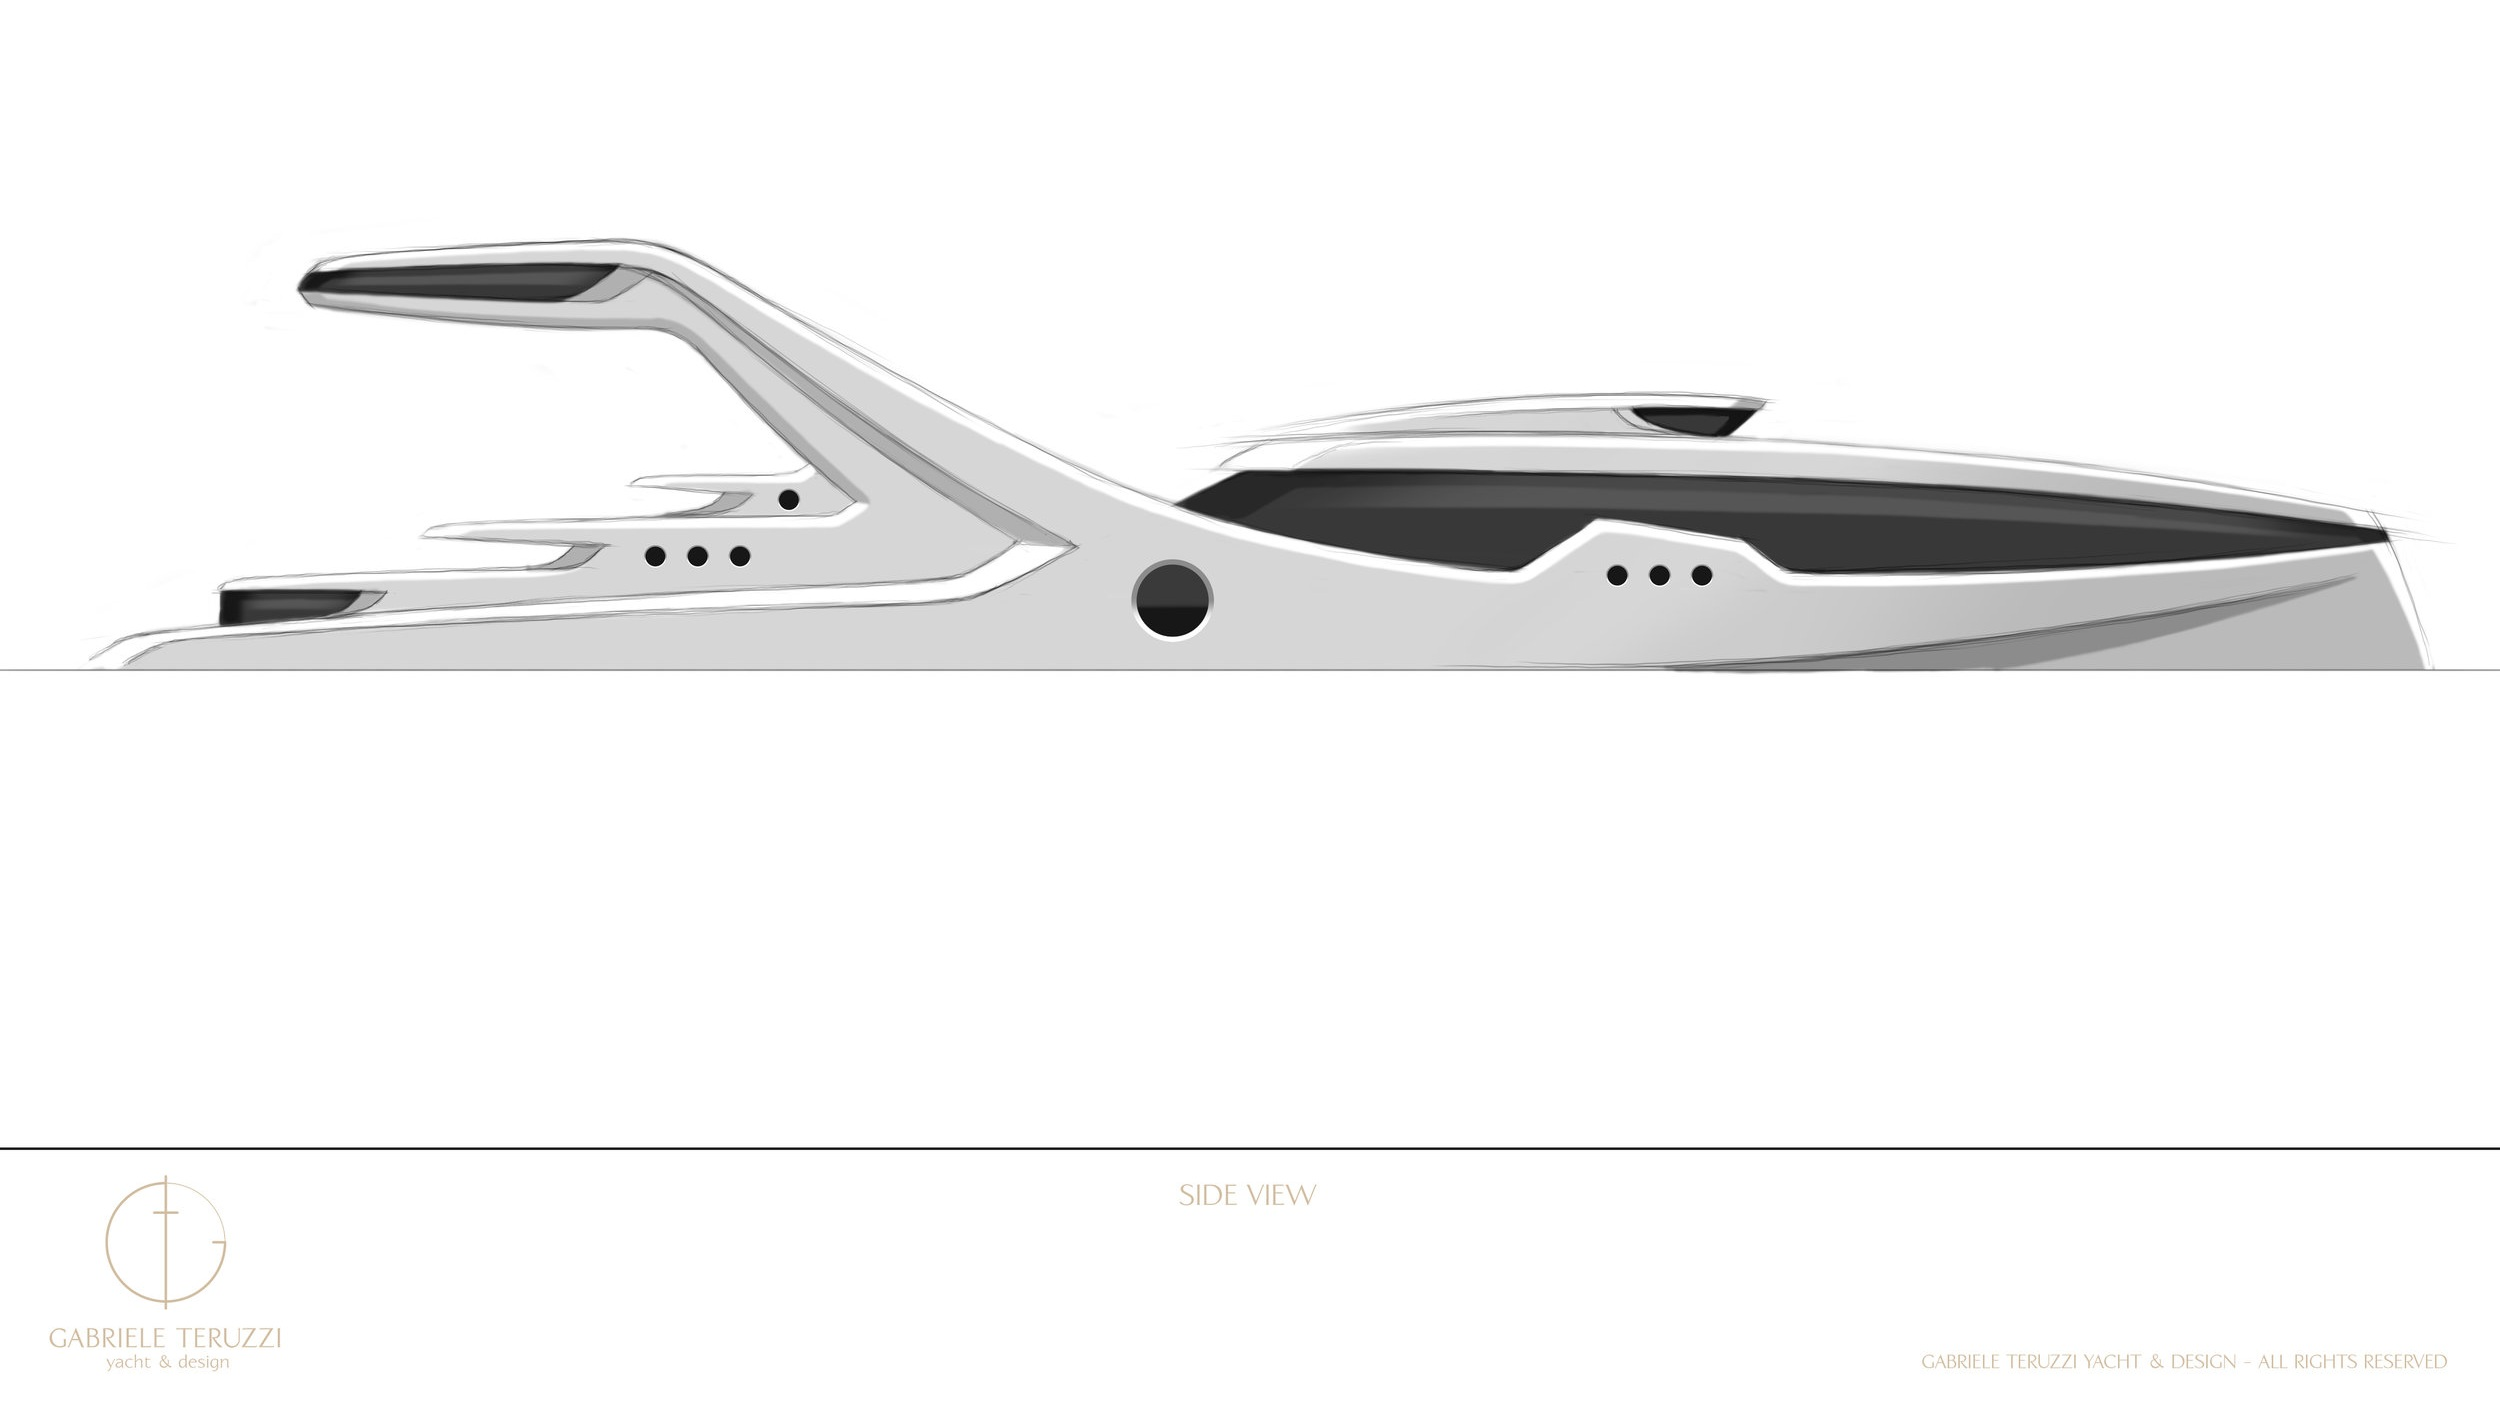 Projected chosen design of Oceanidi's NFS by Gabriele Teruzzi.